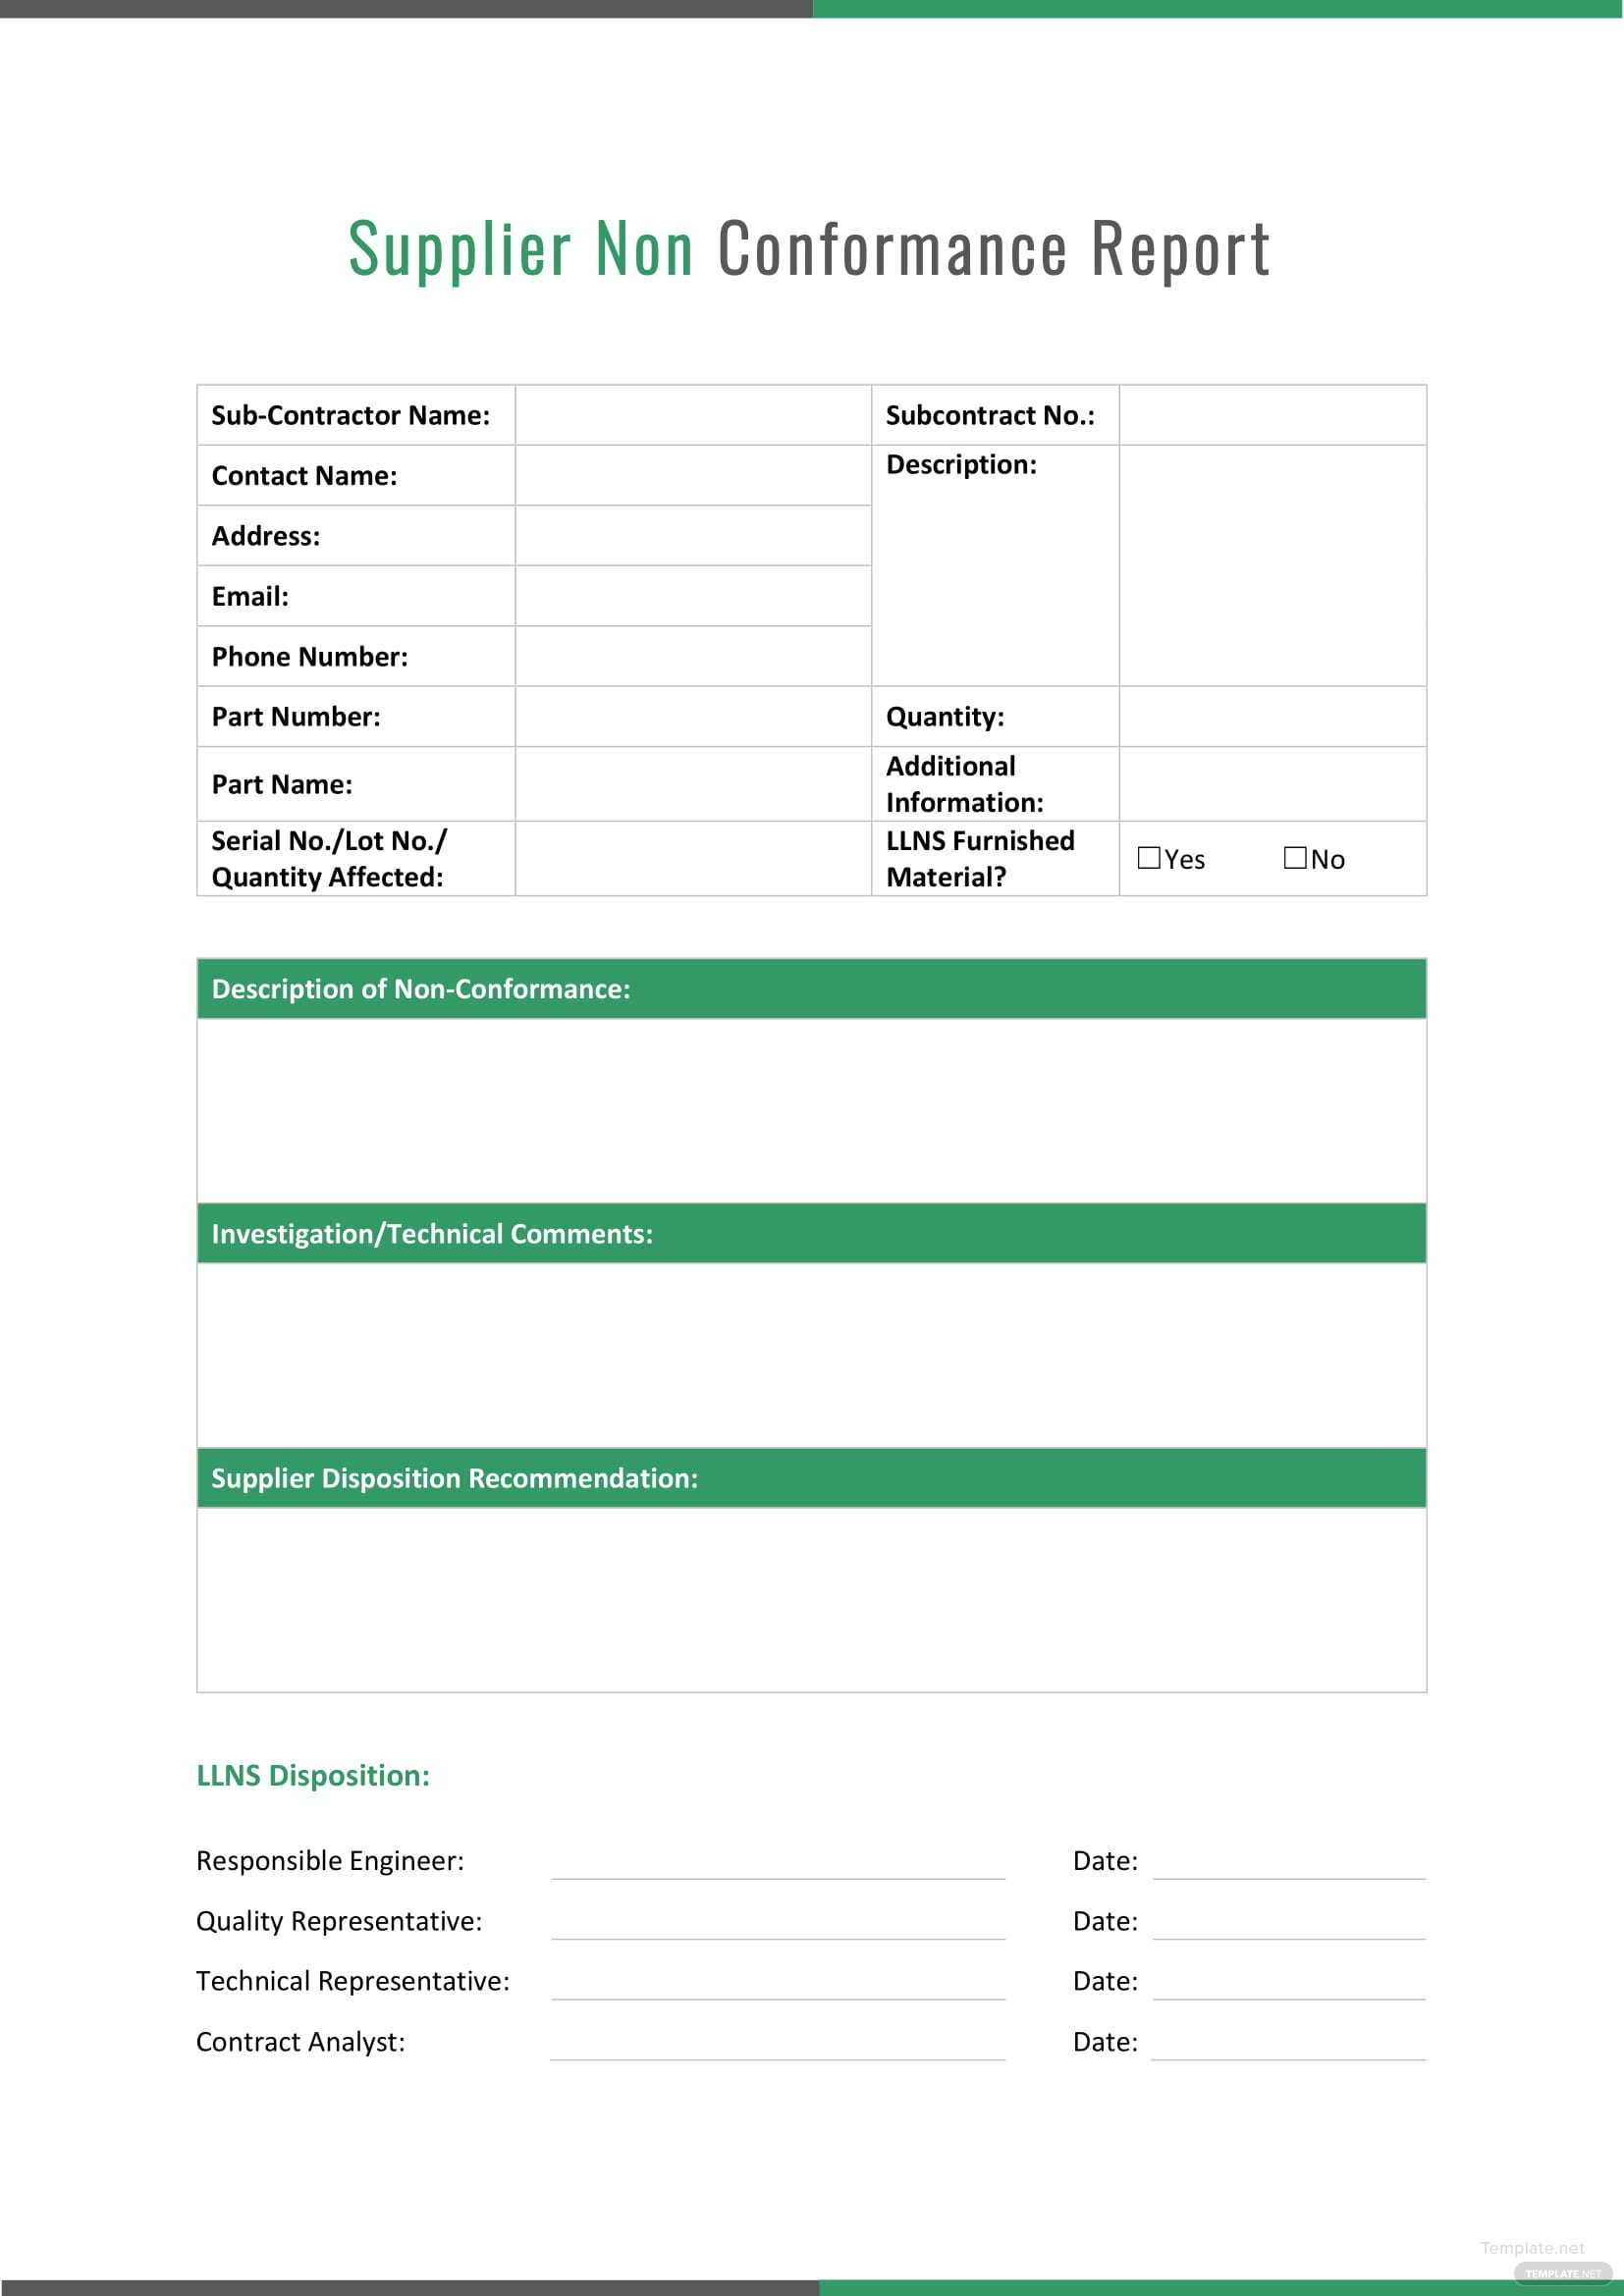 Supplier Non conformance Report Template in Microsoft Word | Template.net